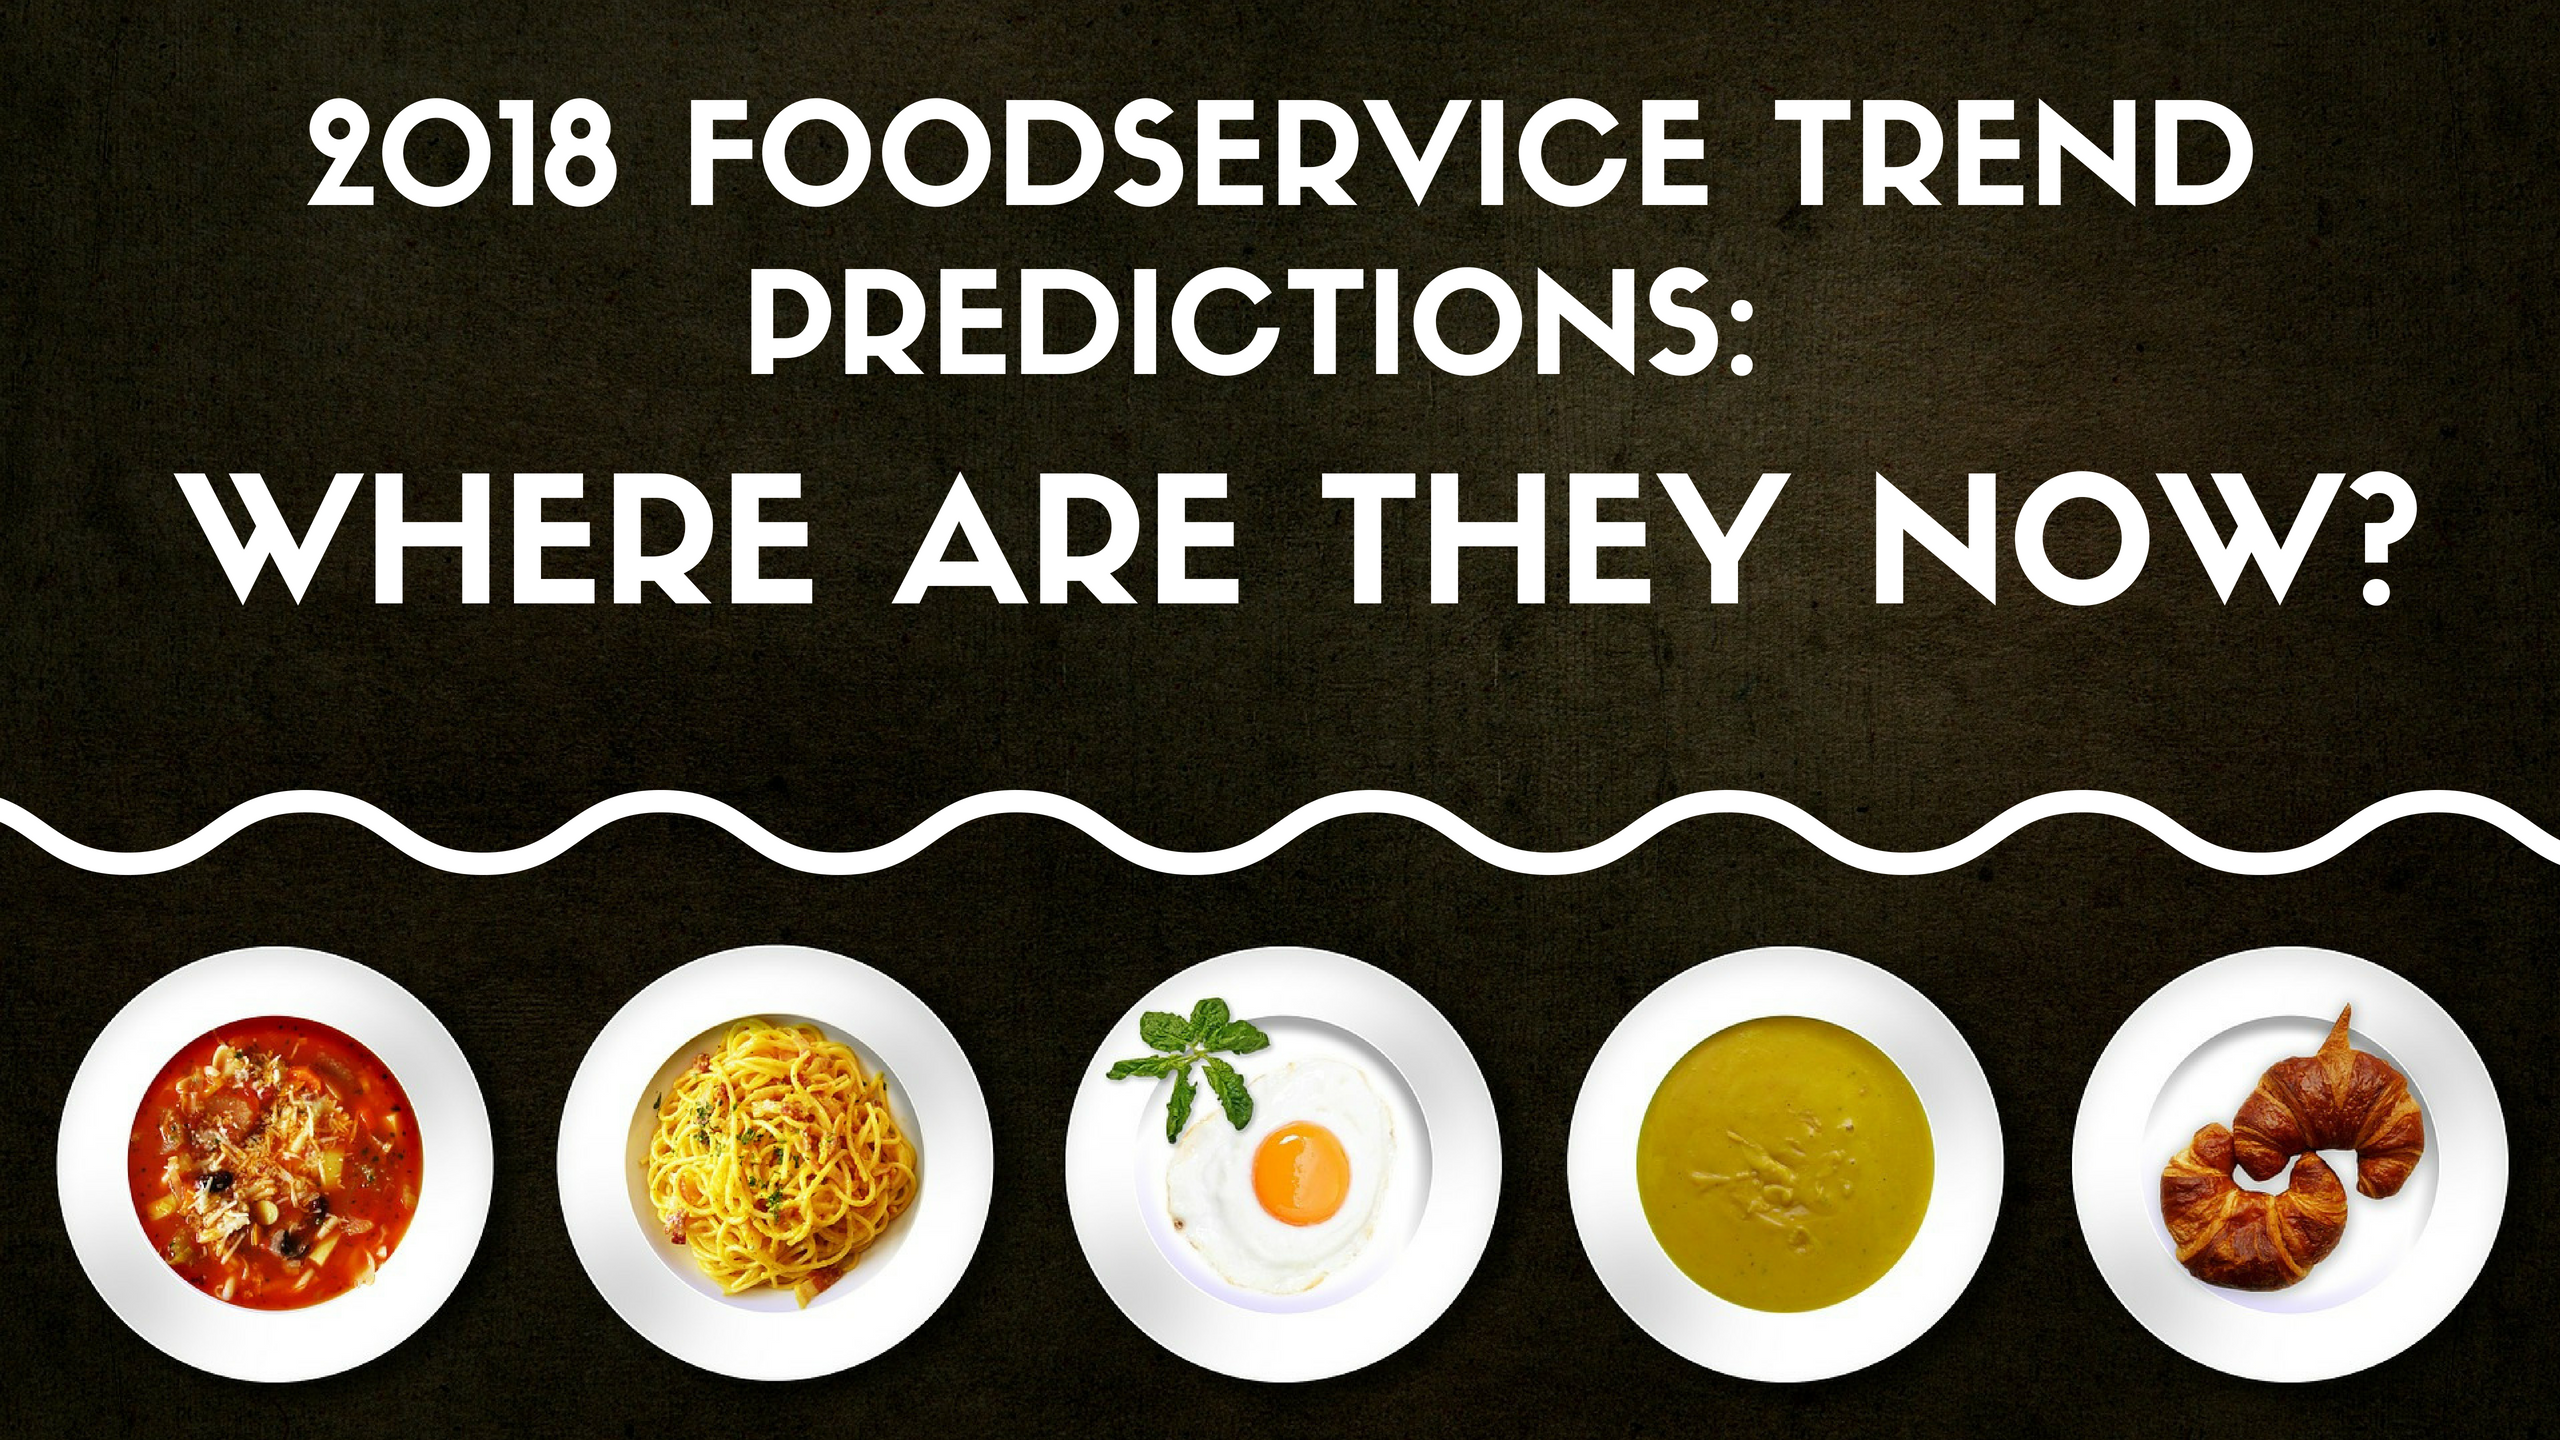 2018 Foodservice trend predictions